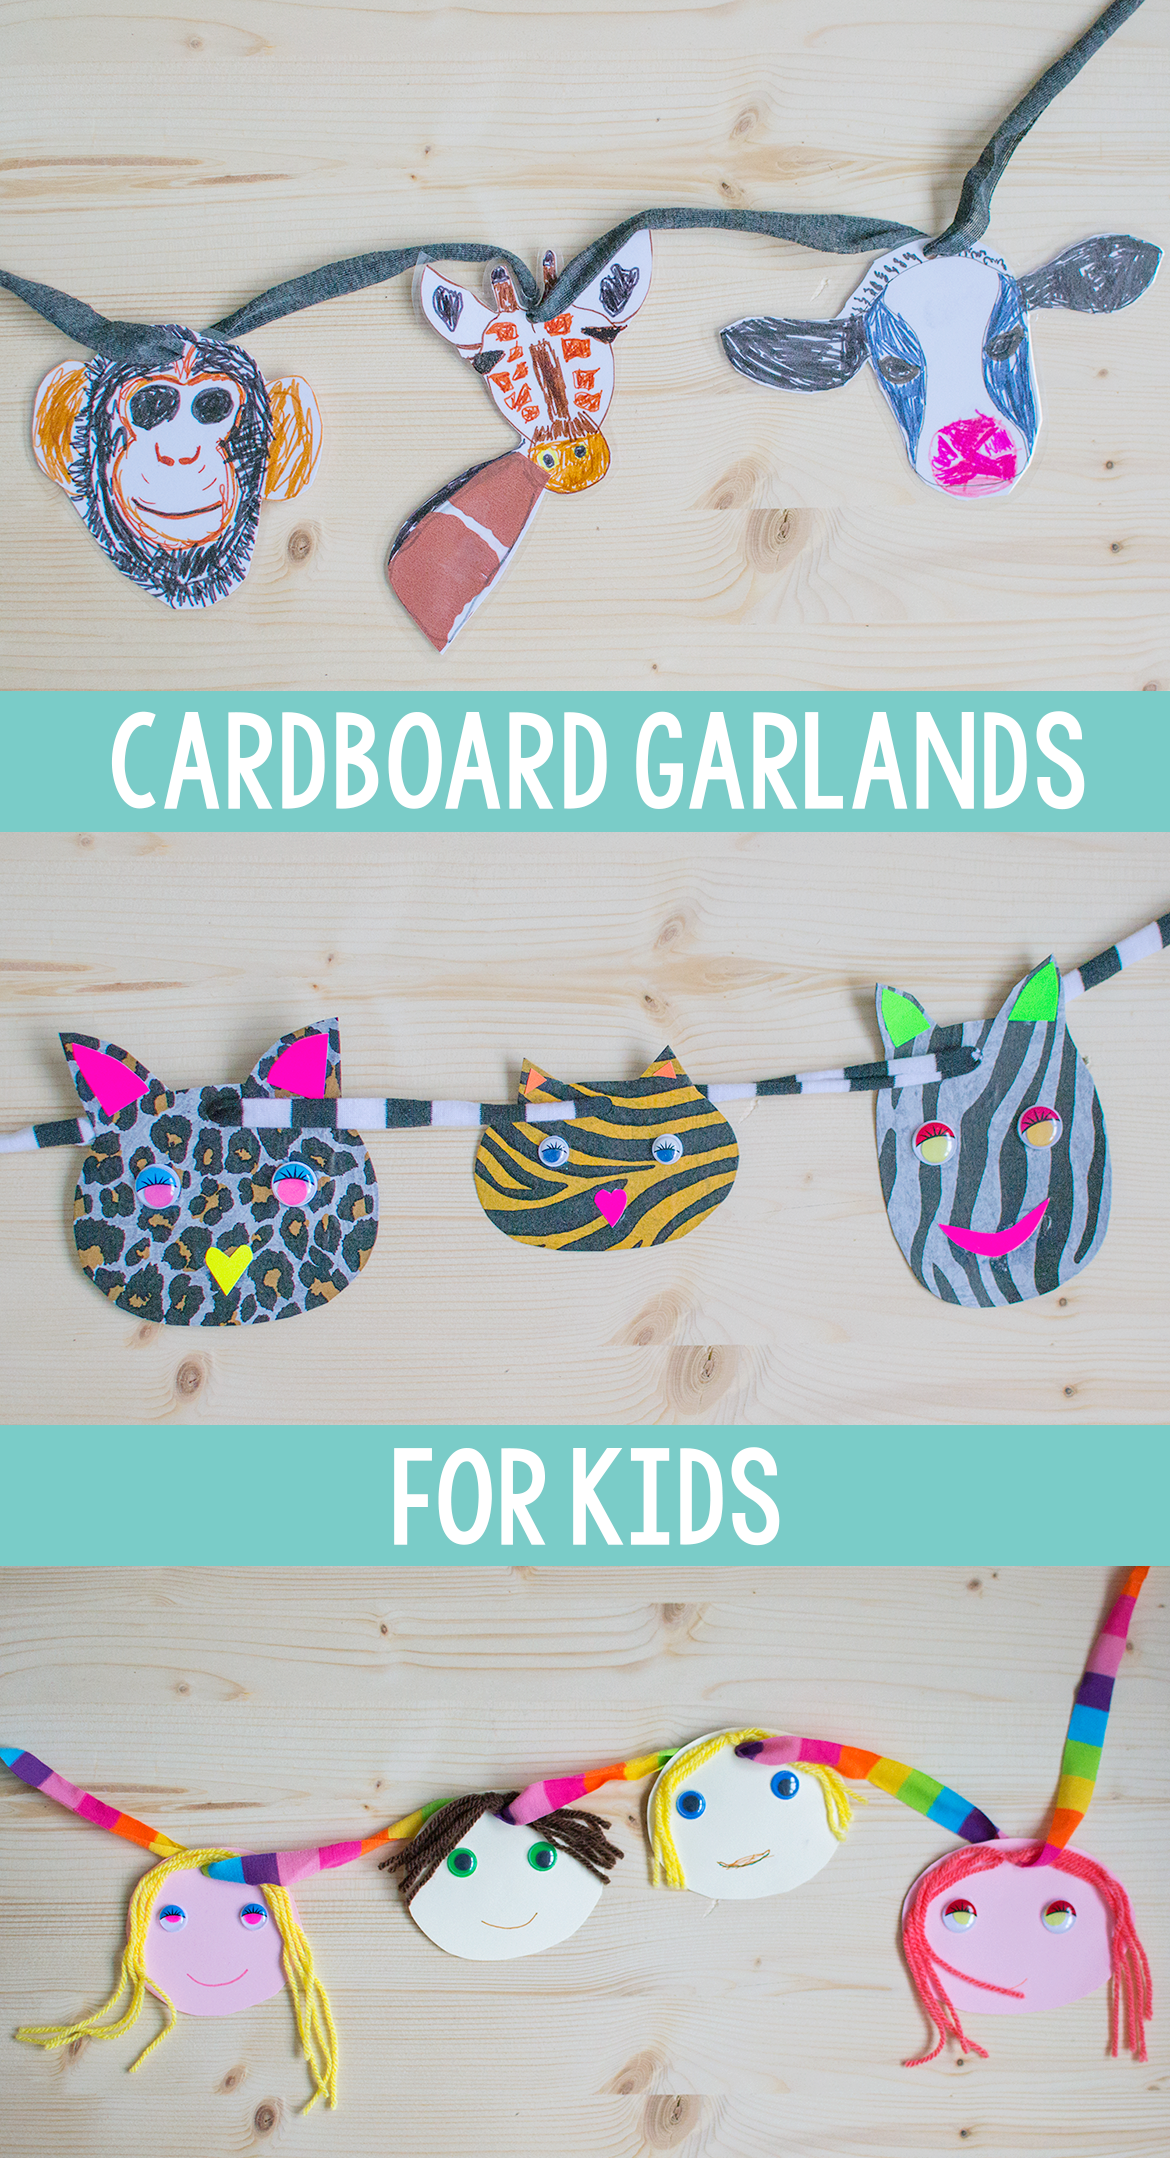 cardboard garlands for kids